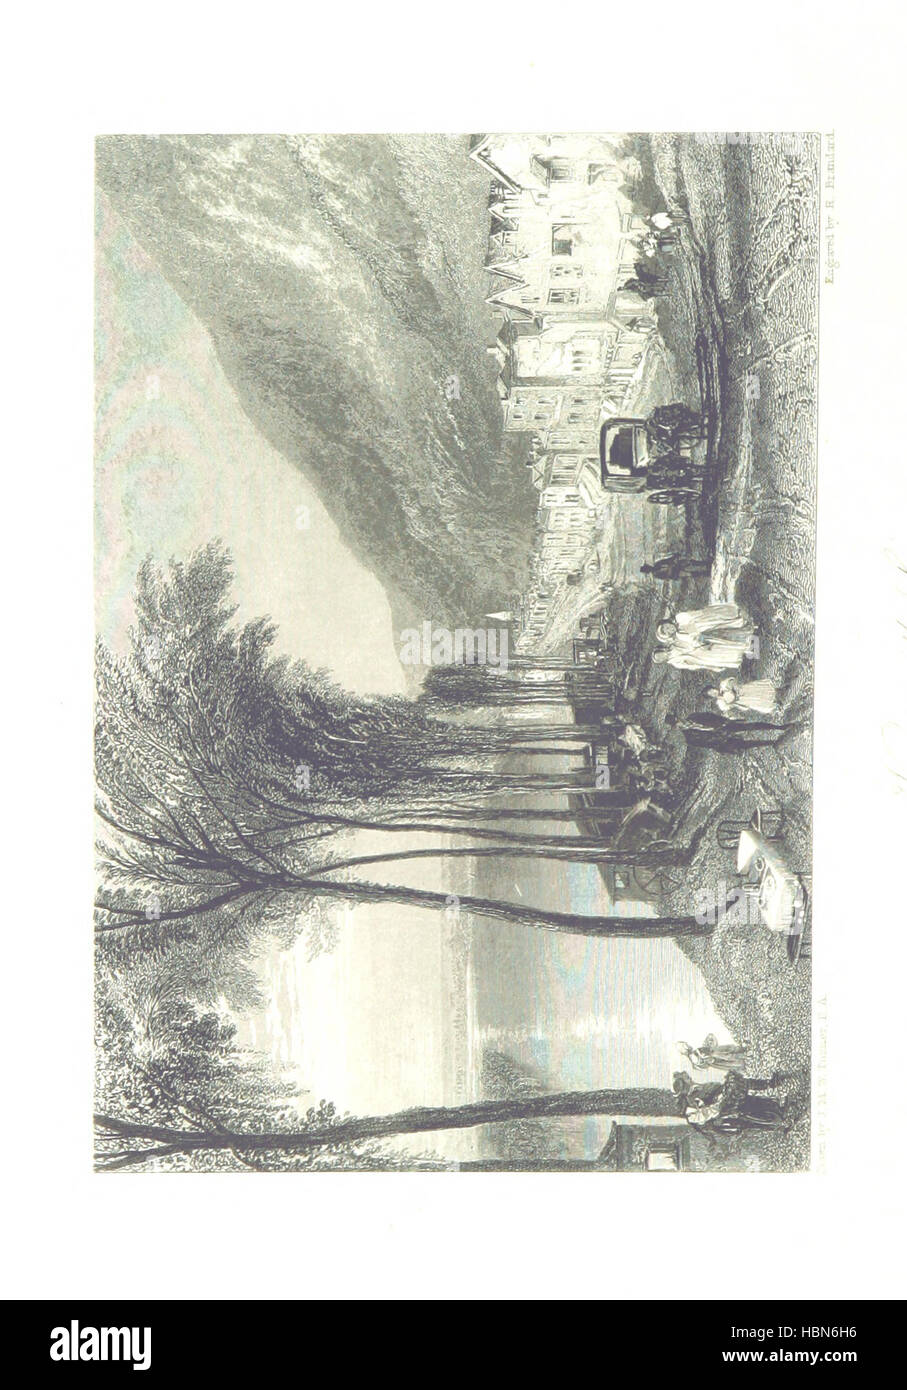 Turner's Rivers of France, with an introduction by John Ruskin. A series of ... steel engravings, ... described - Stock Image